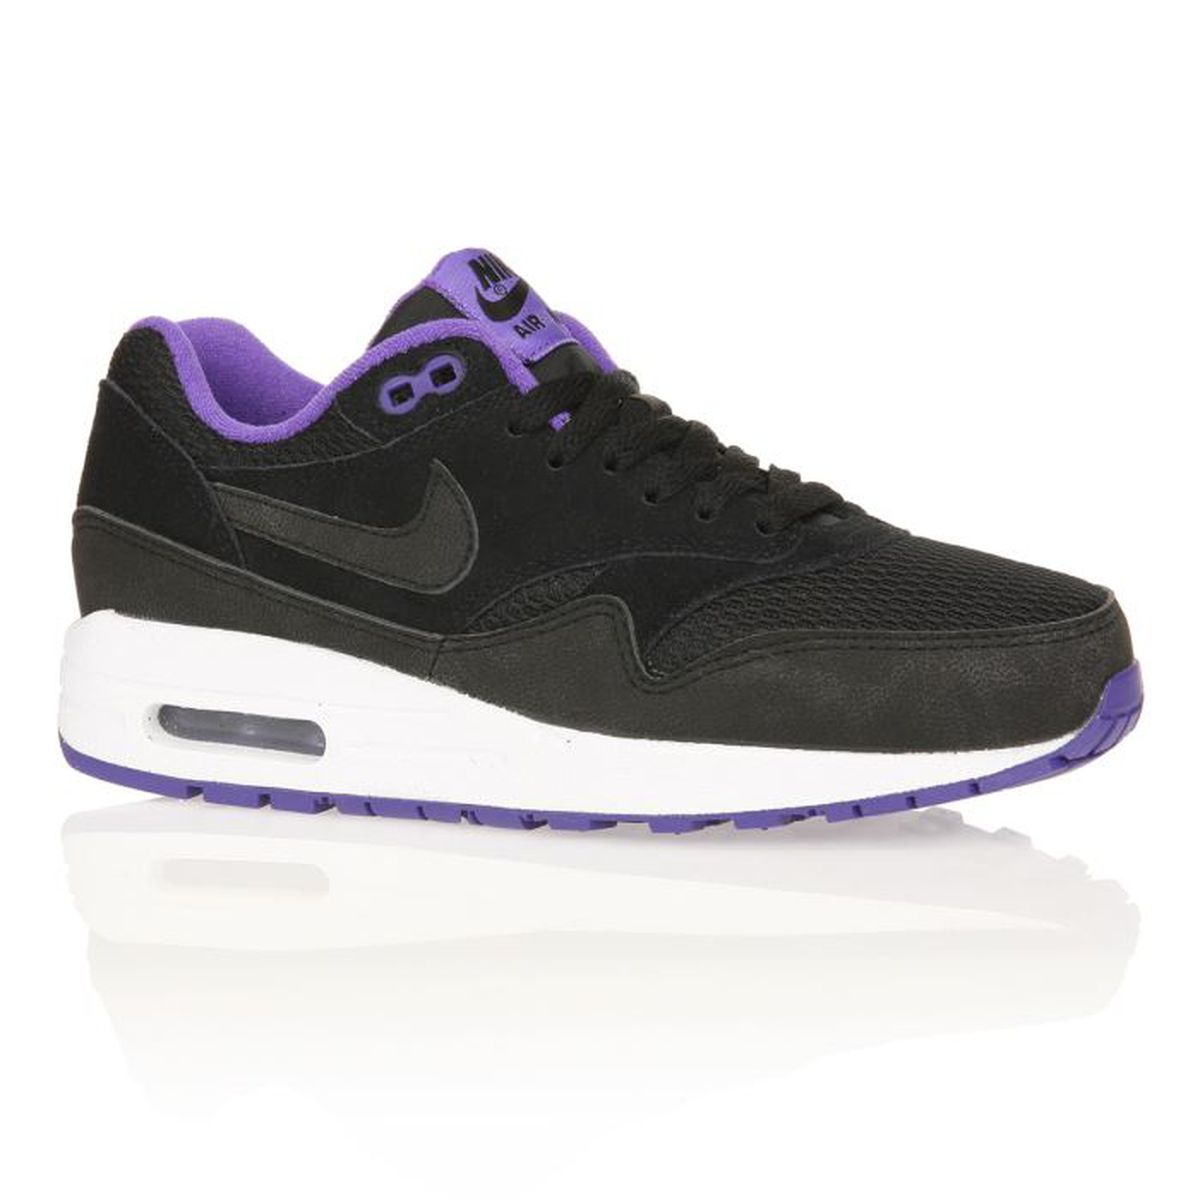 nike baskets air max 1 femme femme noir violet achat vente nike baskets air max 1 femme. Black Bedroom Furniture Sets. Home Design Ideas